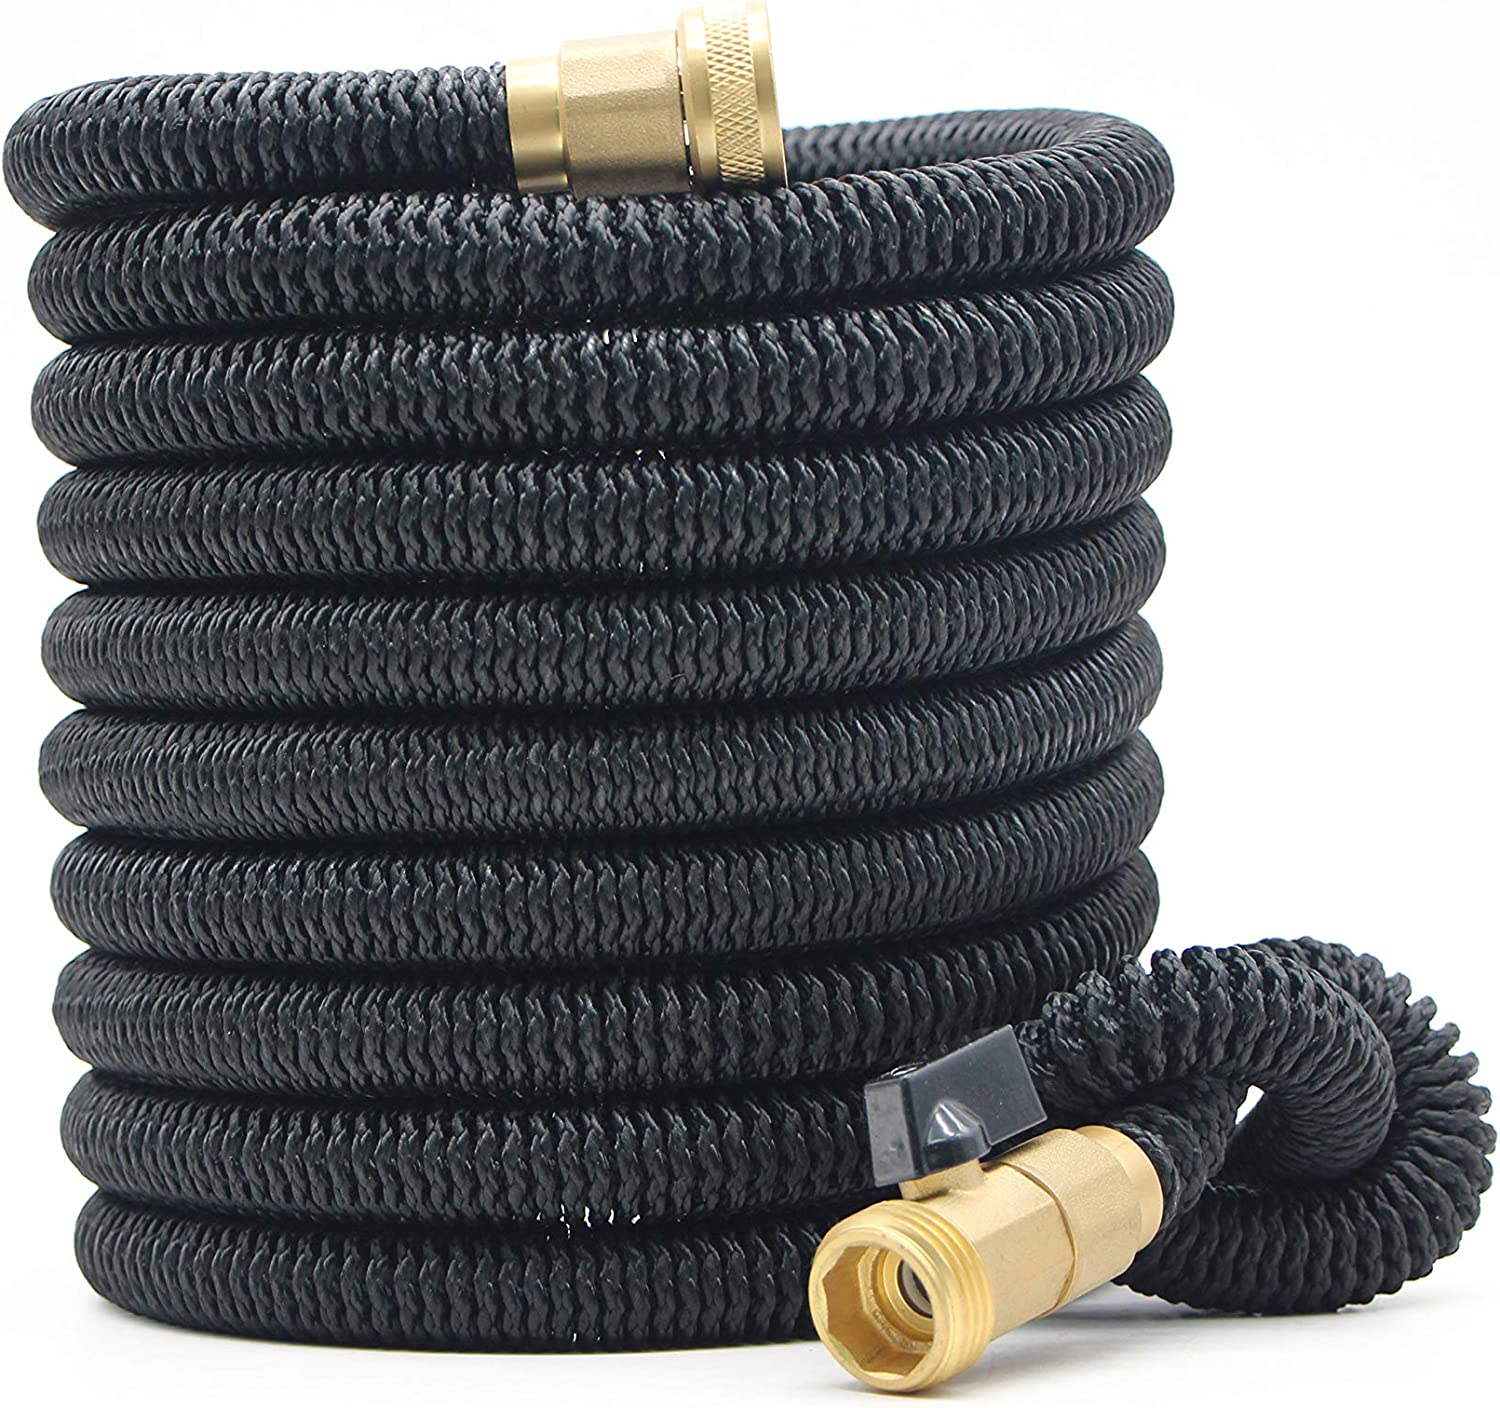 Expandable Garden Hose 50Ft Extra Strong reel. Brass Connectors with Protectors 100% No-Rust & Leak. Best Water Hose for Pocket Use. 100% Flex Expanding 50 ft (black)